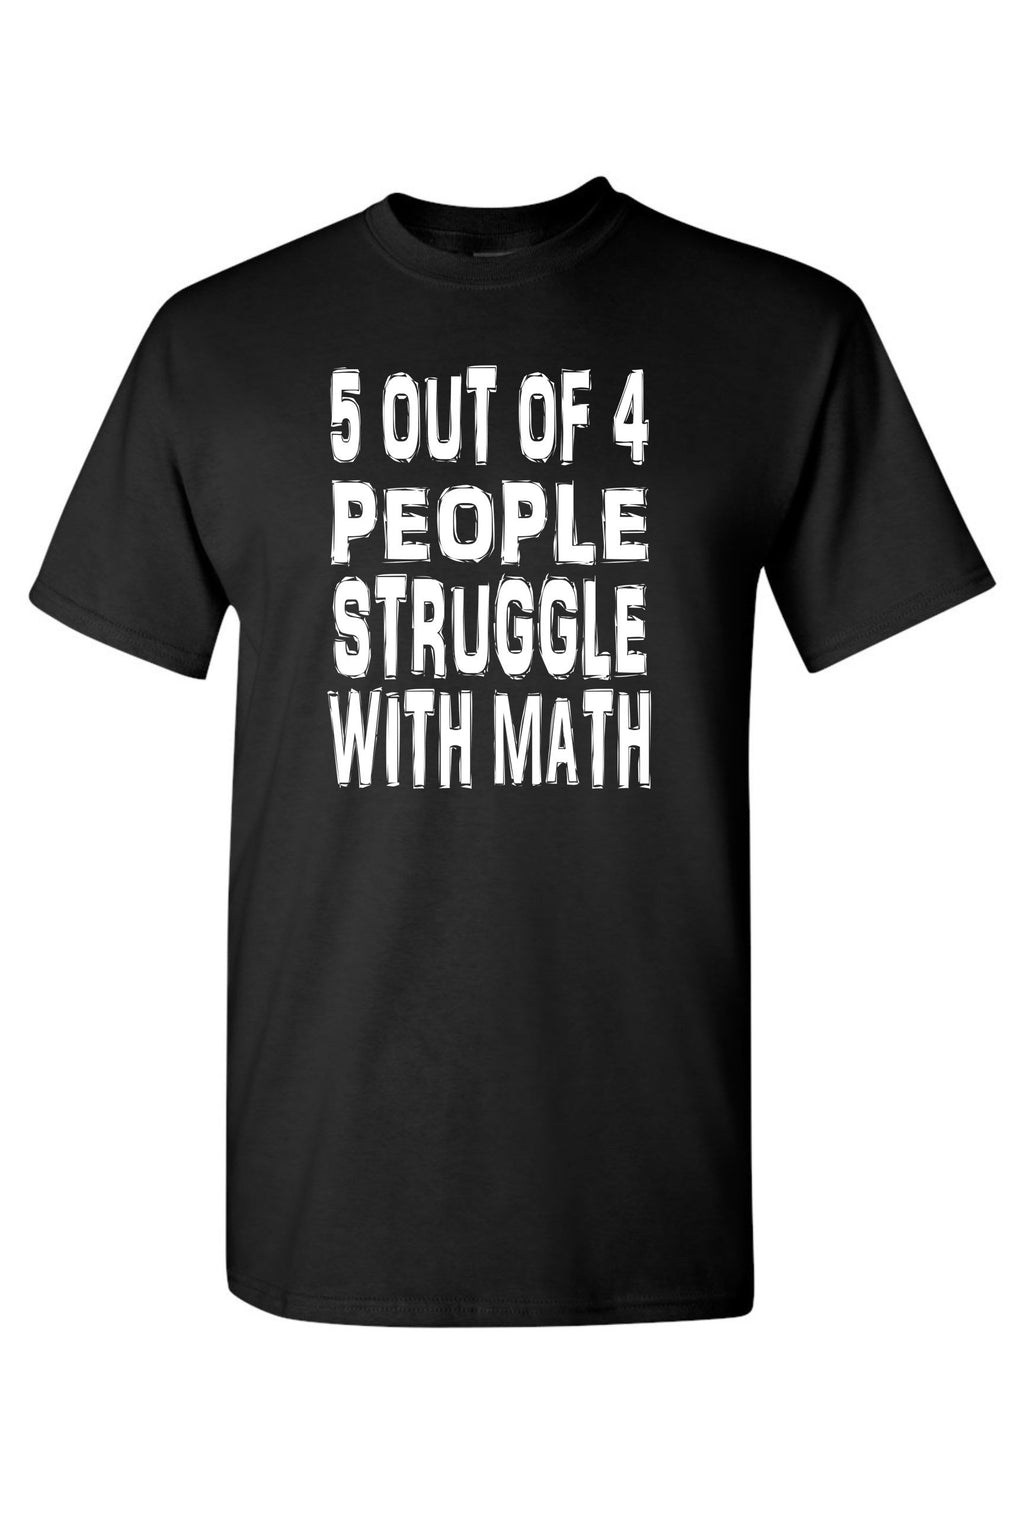 Unisex 5 Out Of 4 People Struggle With Math Short Sleeve Shirt